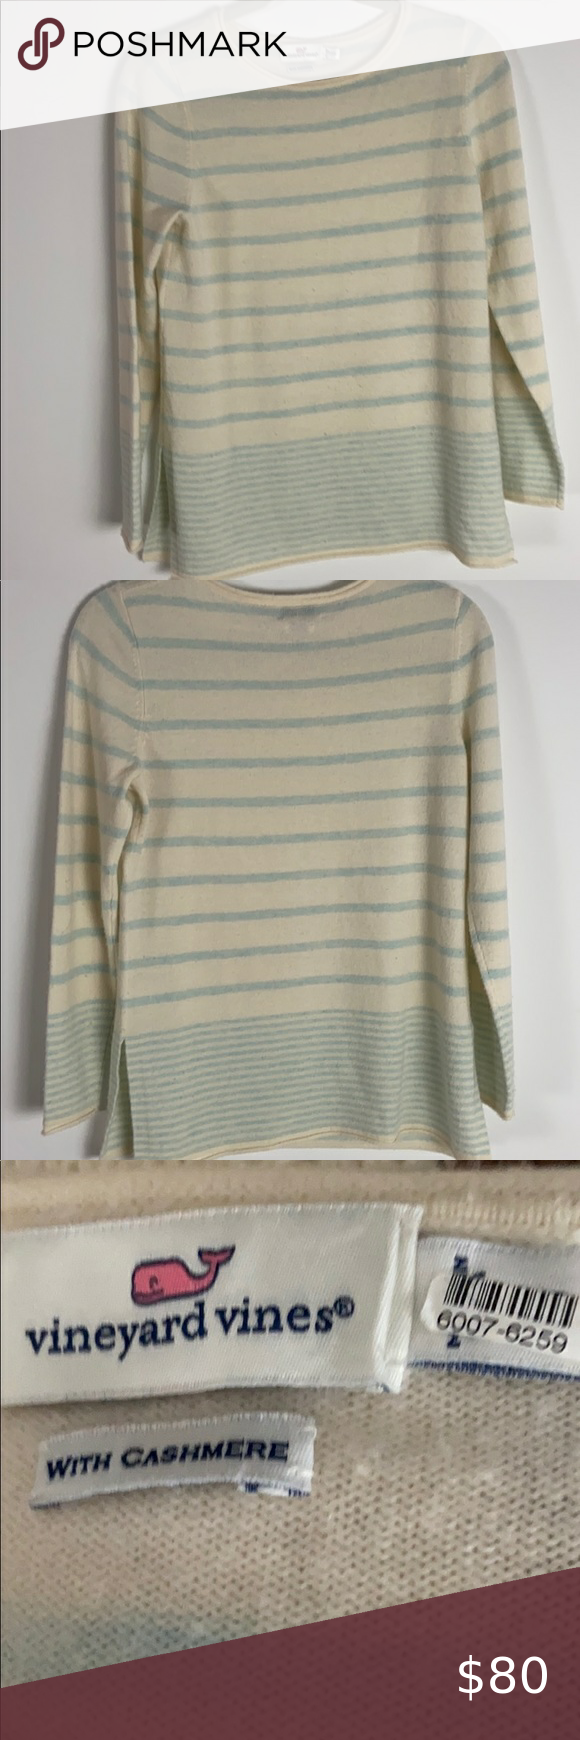 Vineyard vines sweater with cashmere in 2020 | Cashmere